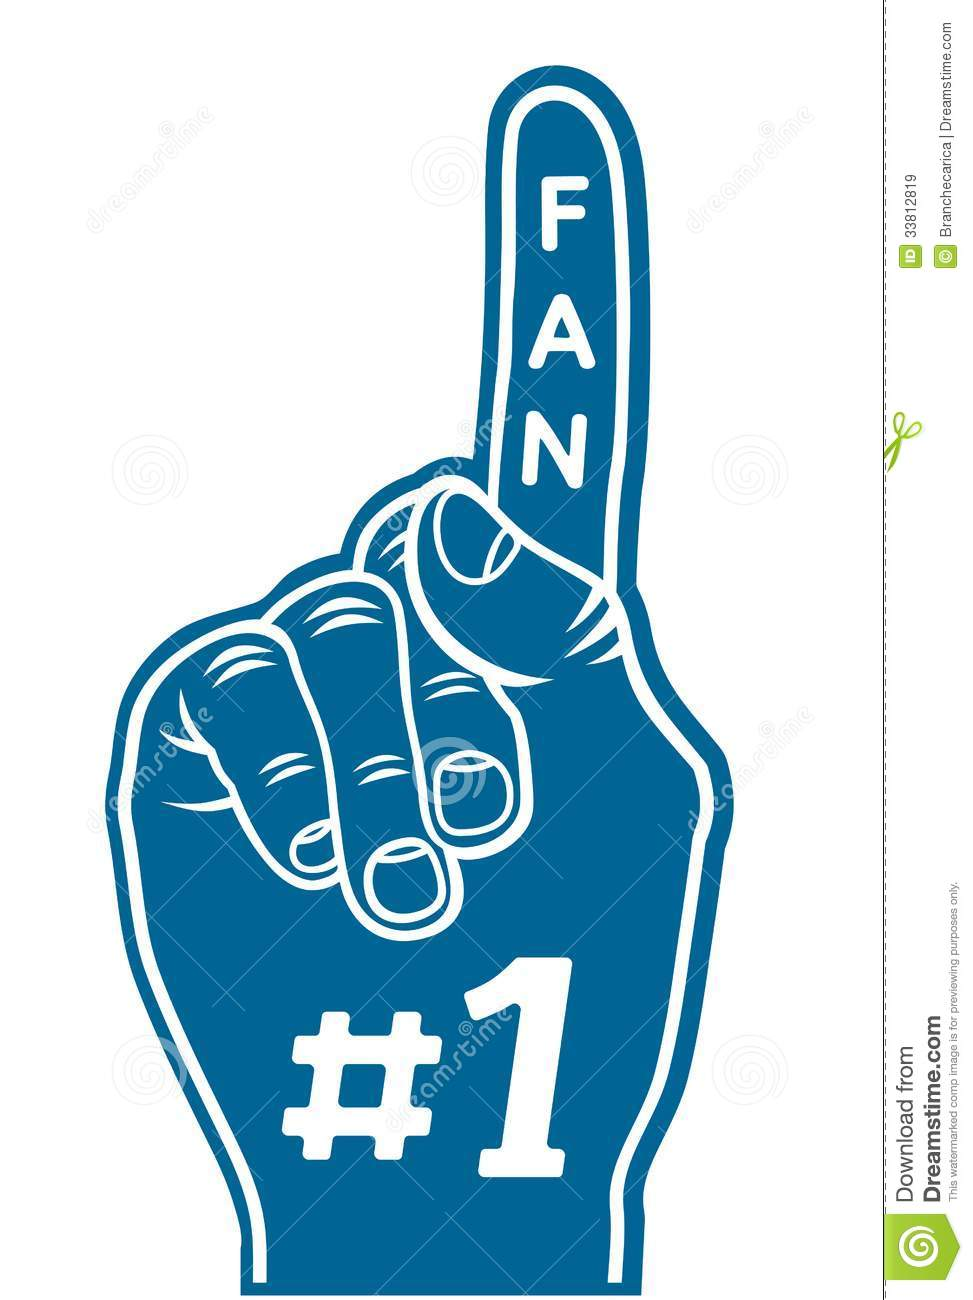 Foam Finger - Fan Finger Royalty Free Stock Images - Image: 33812819